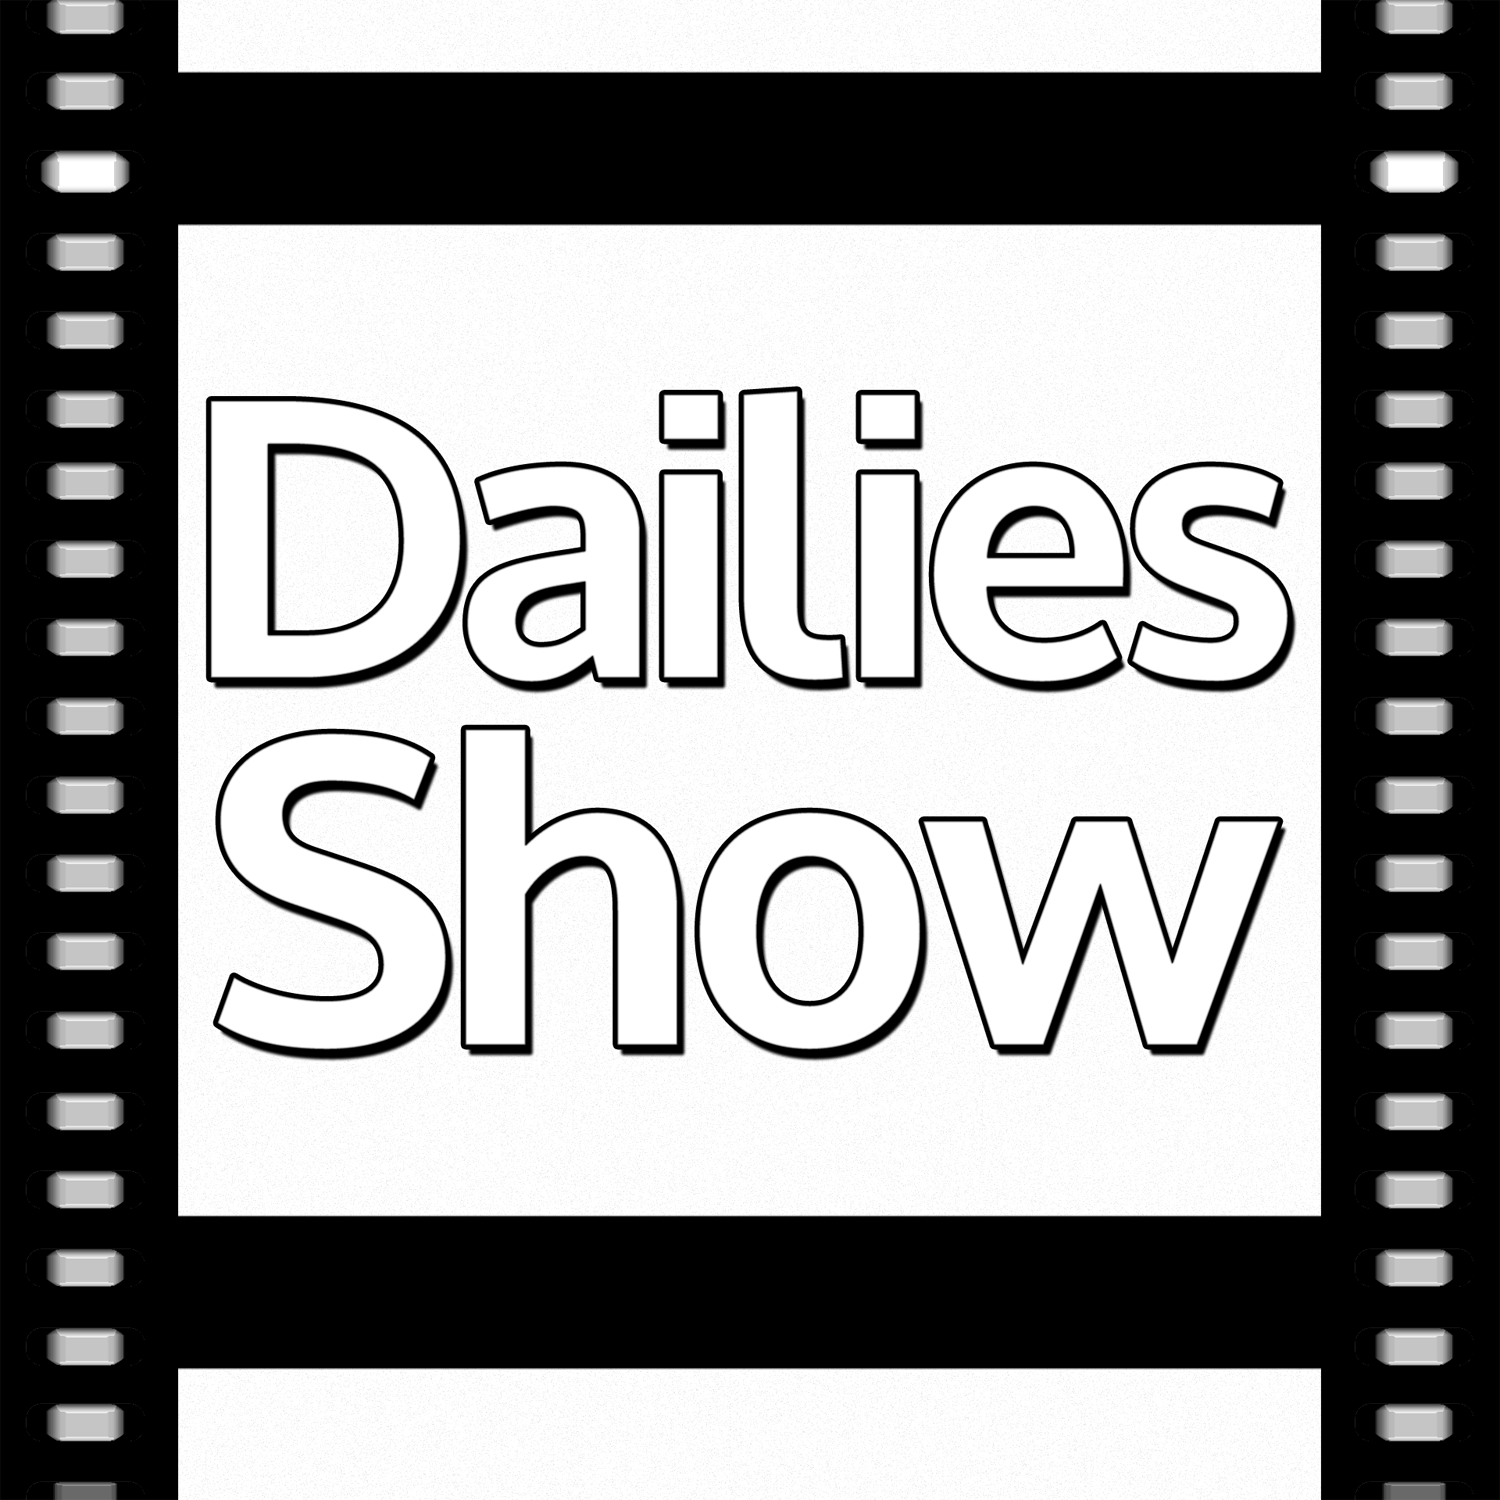 Dailies Show Podcast Episode 38 - March 30, 2018